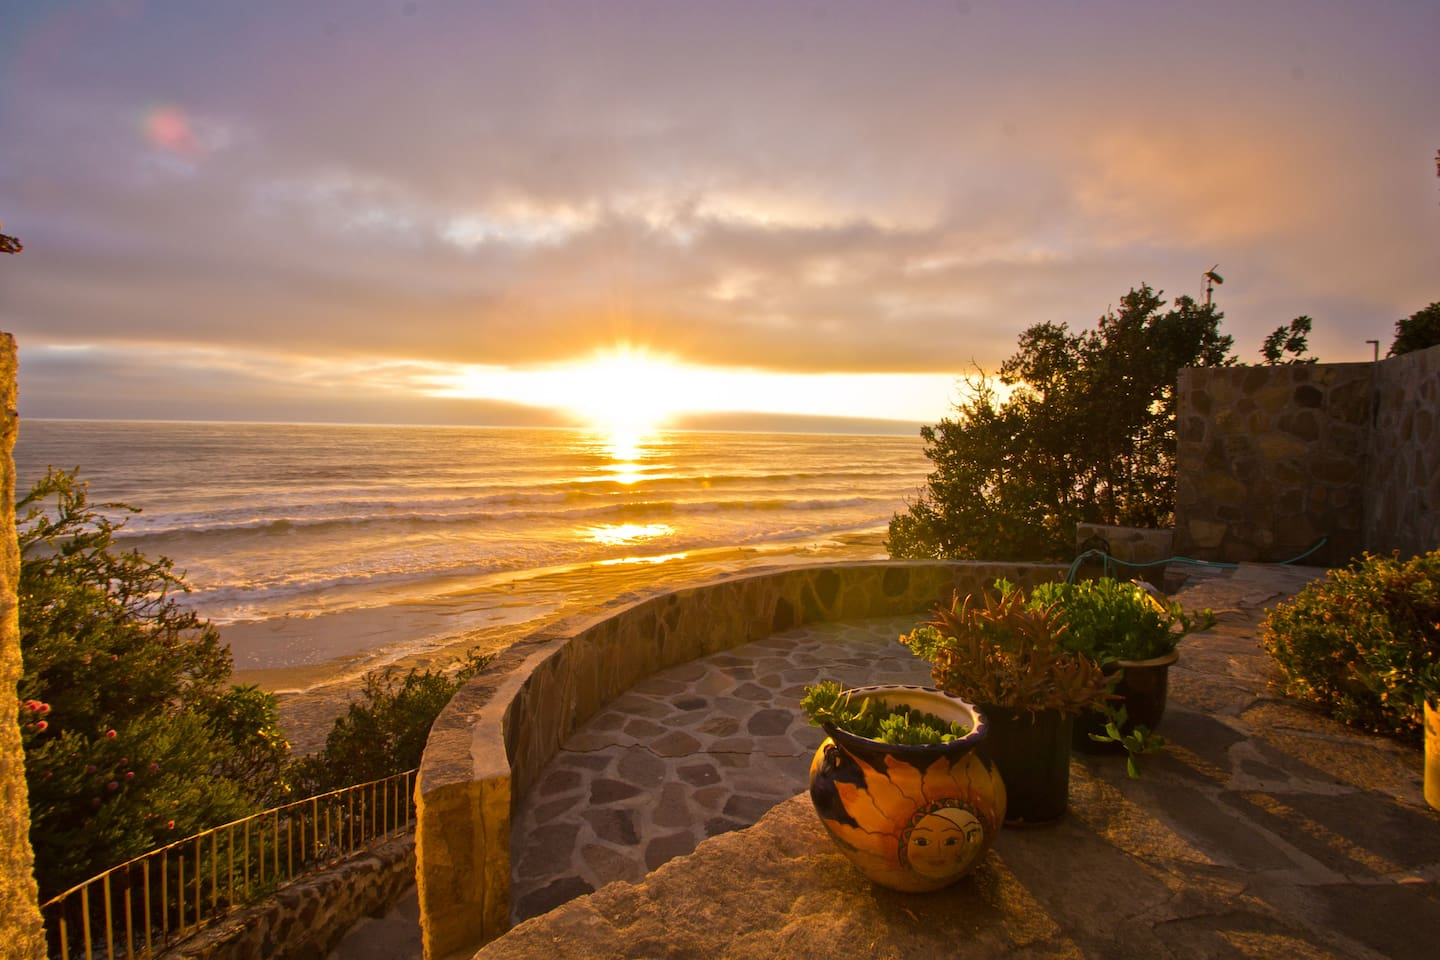 Relax and enjoy our beautiful sunsets!  Just one hour south of San Diego.